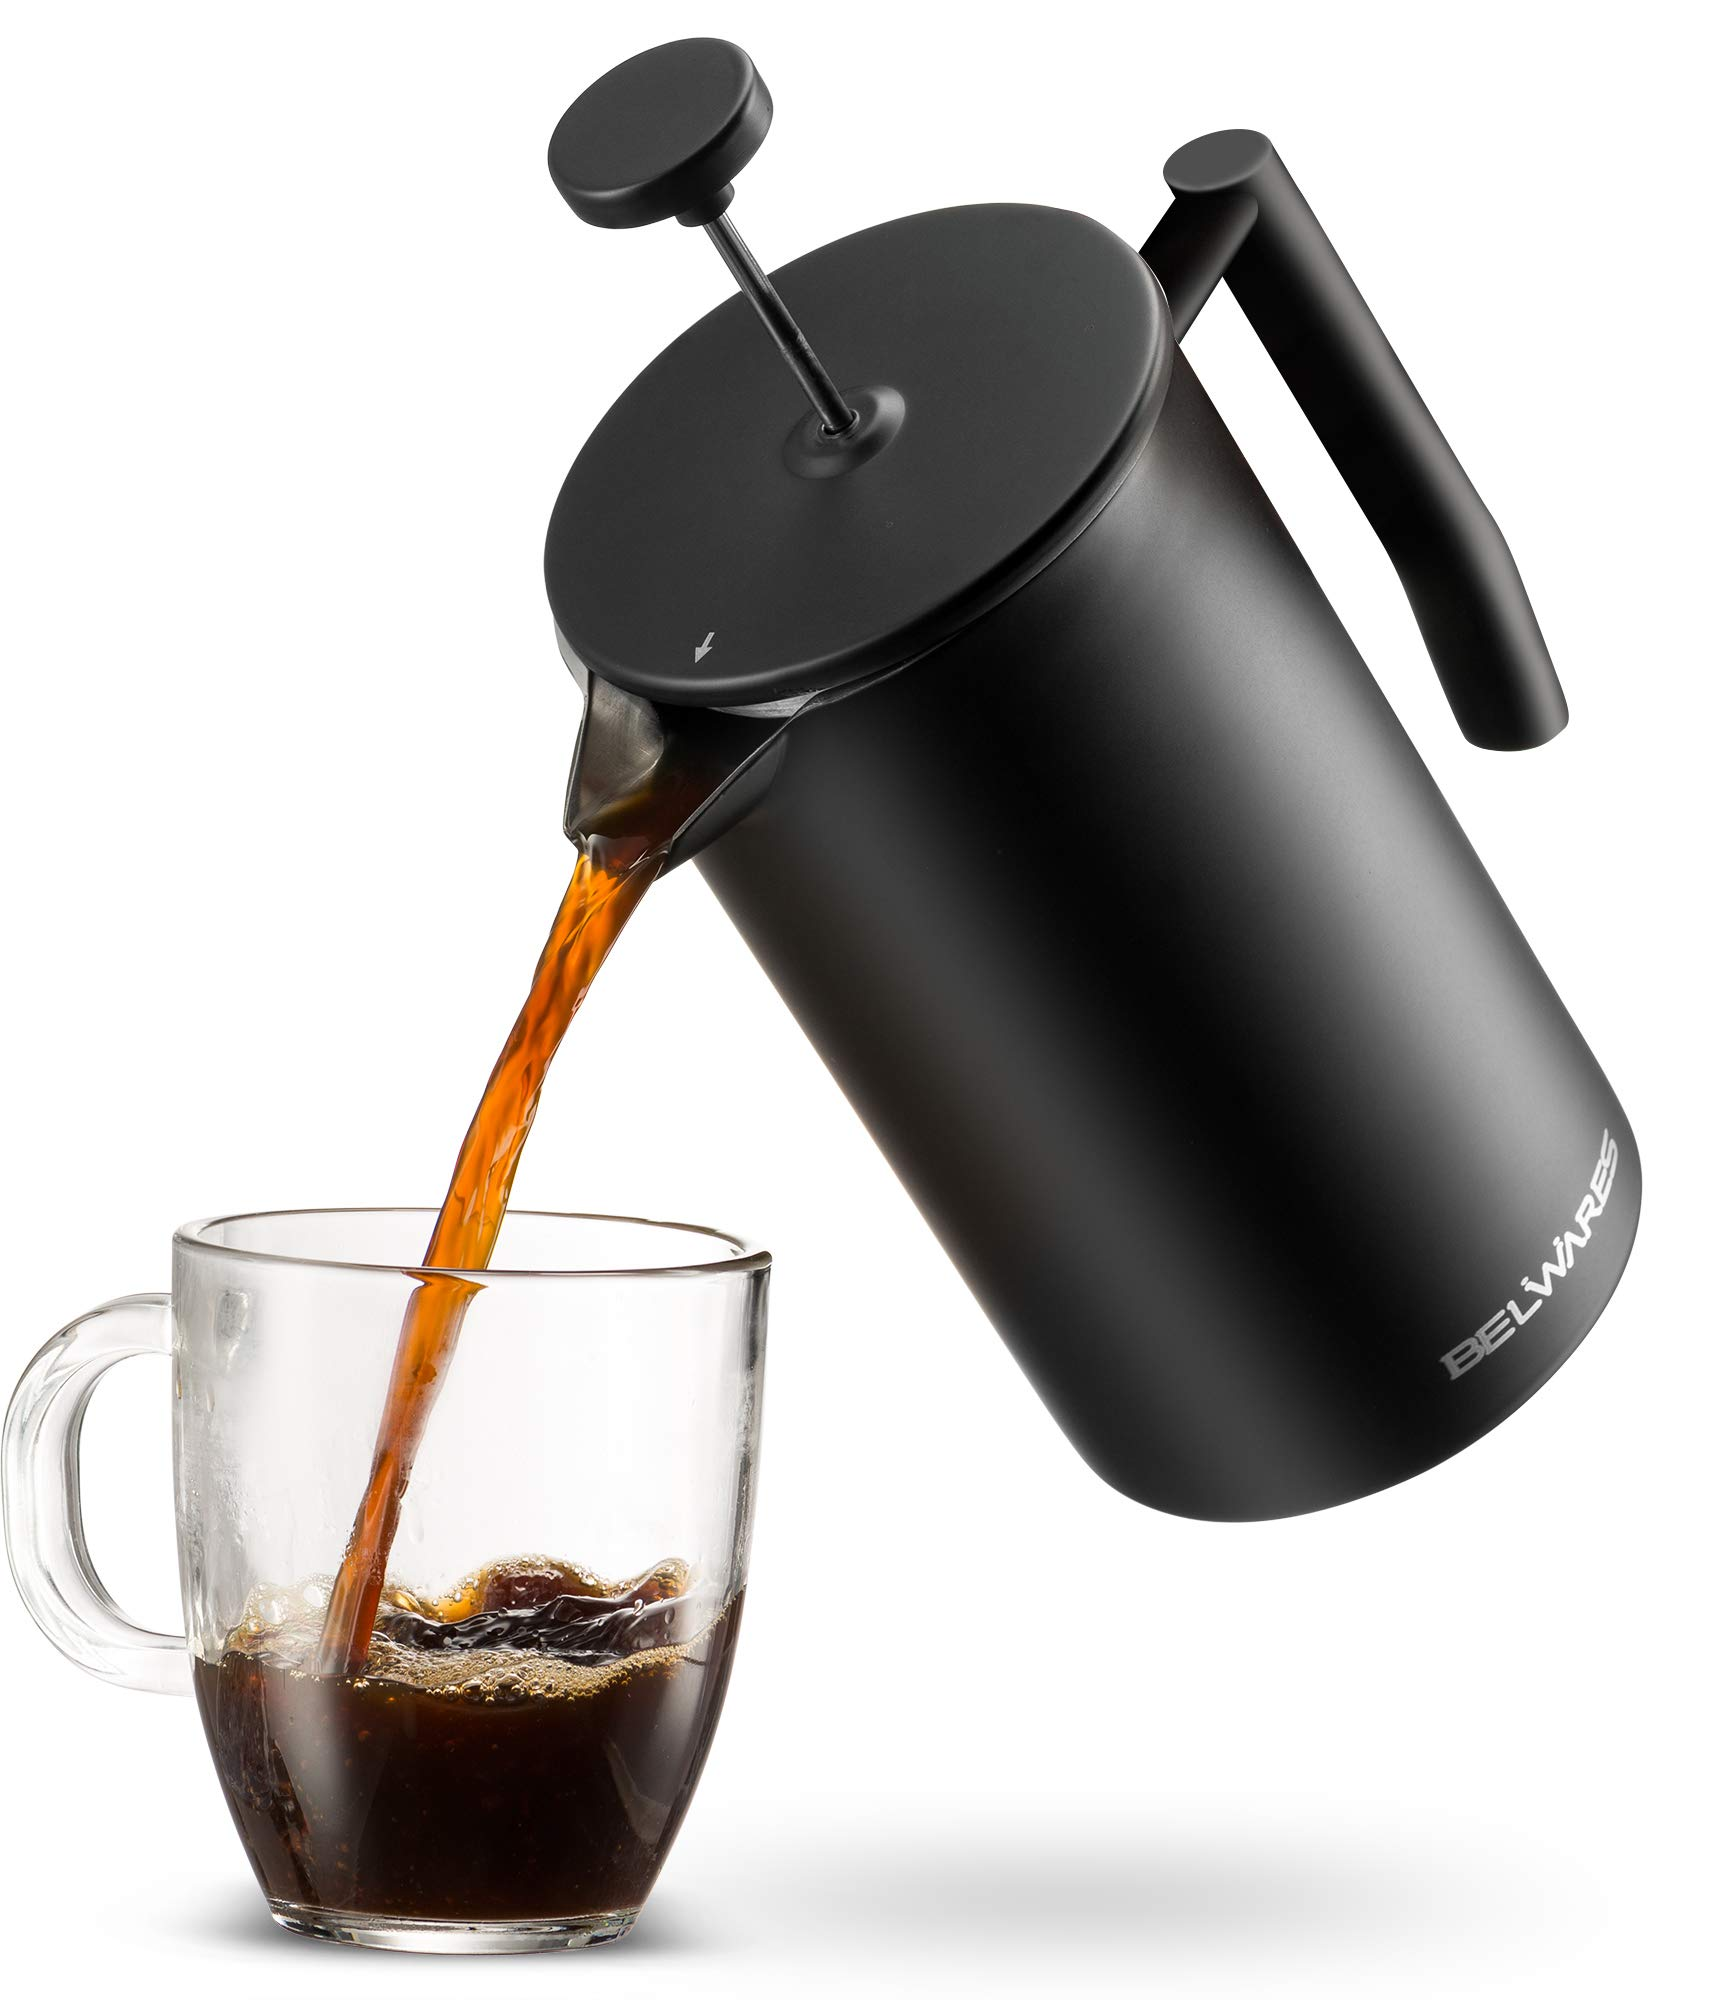 French Press Coffee Maker with Extra Filters for a Richer and Fuller Coffee Flavor, Designed with Double Wall Black Stainless Steel to Preserve Hot Coffee Temperature (34oz)